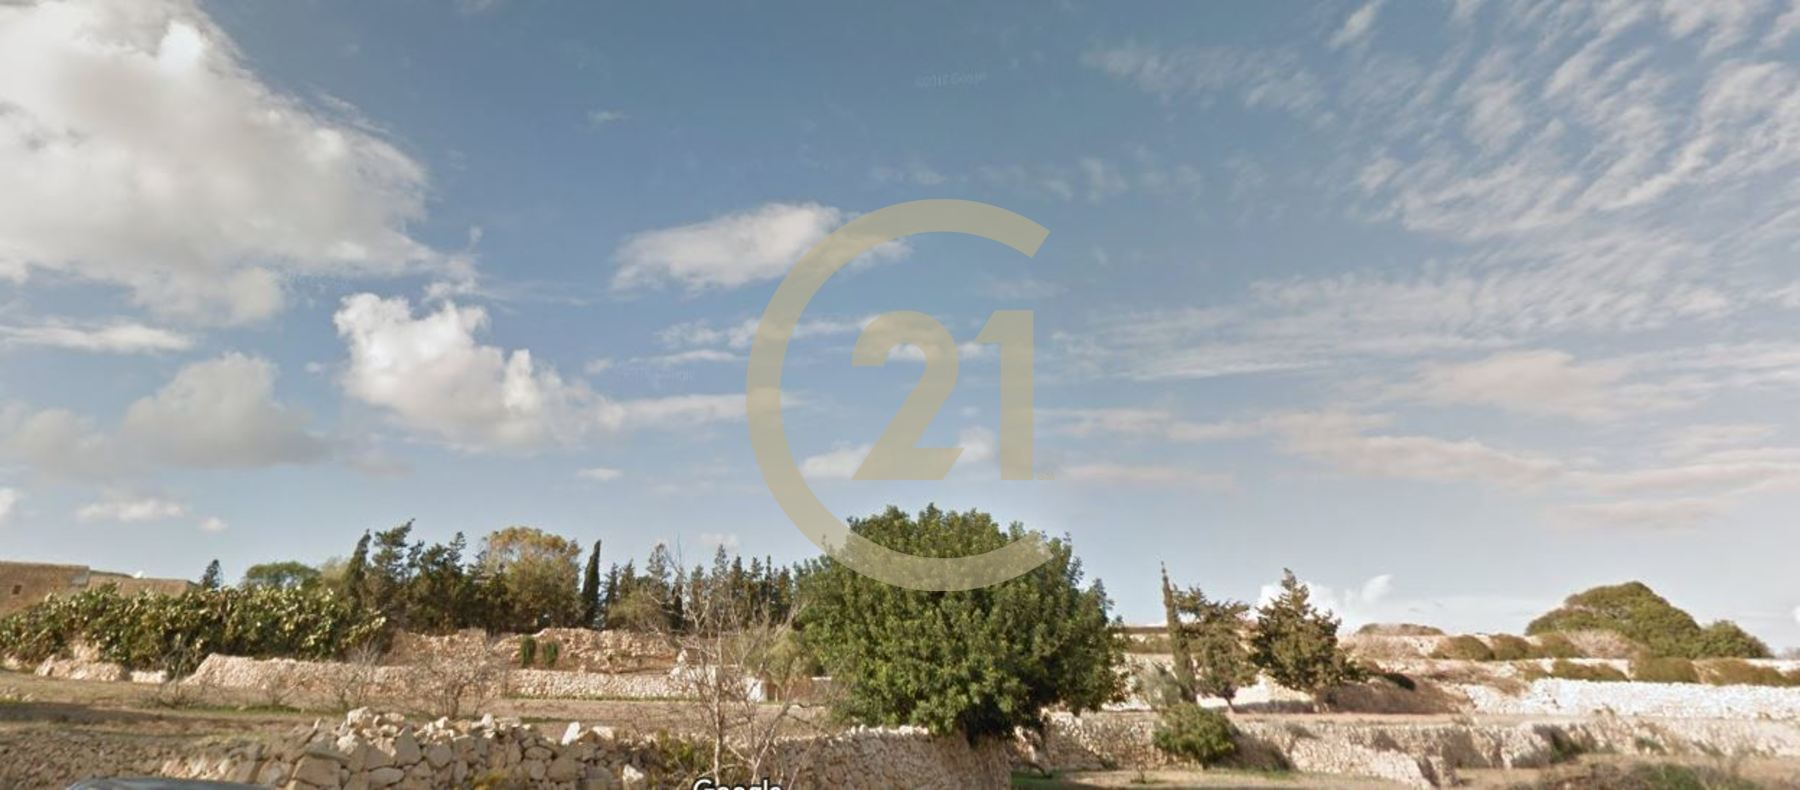 3 Bedroom Finished Apartment For Sale In Mosta